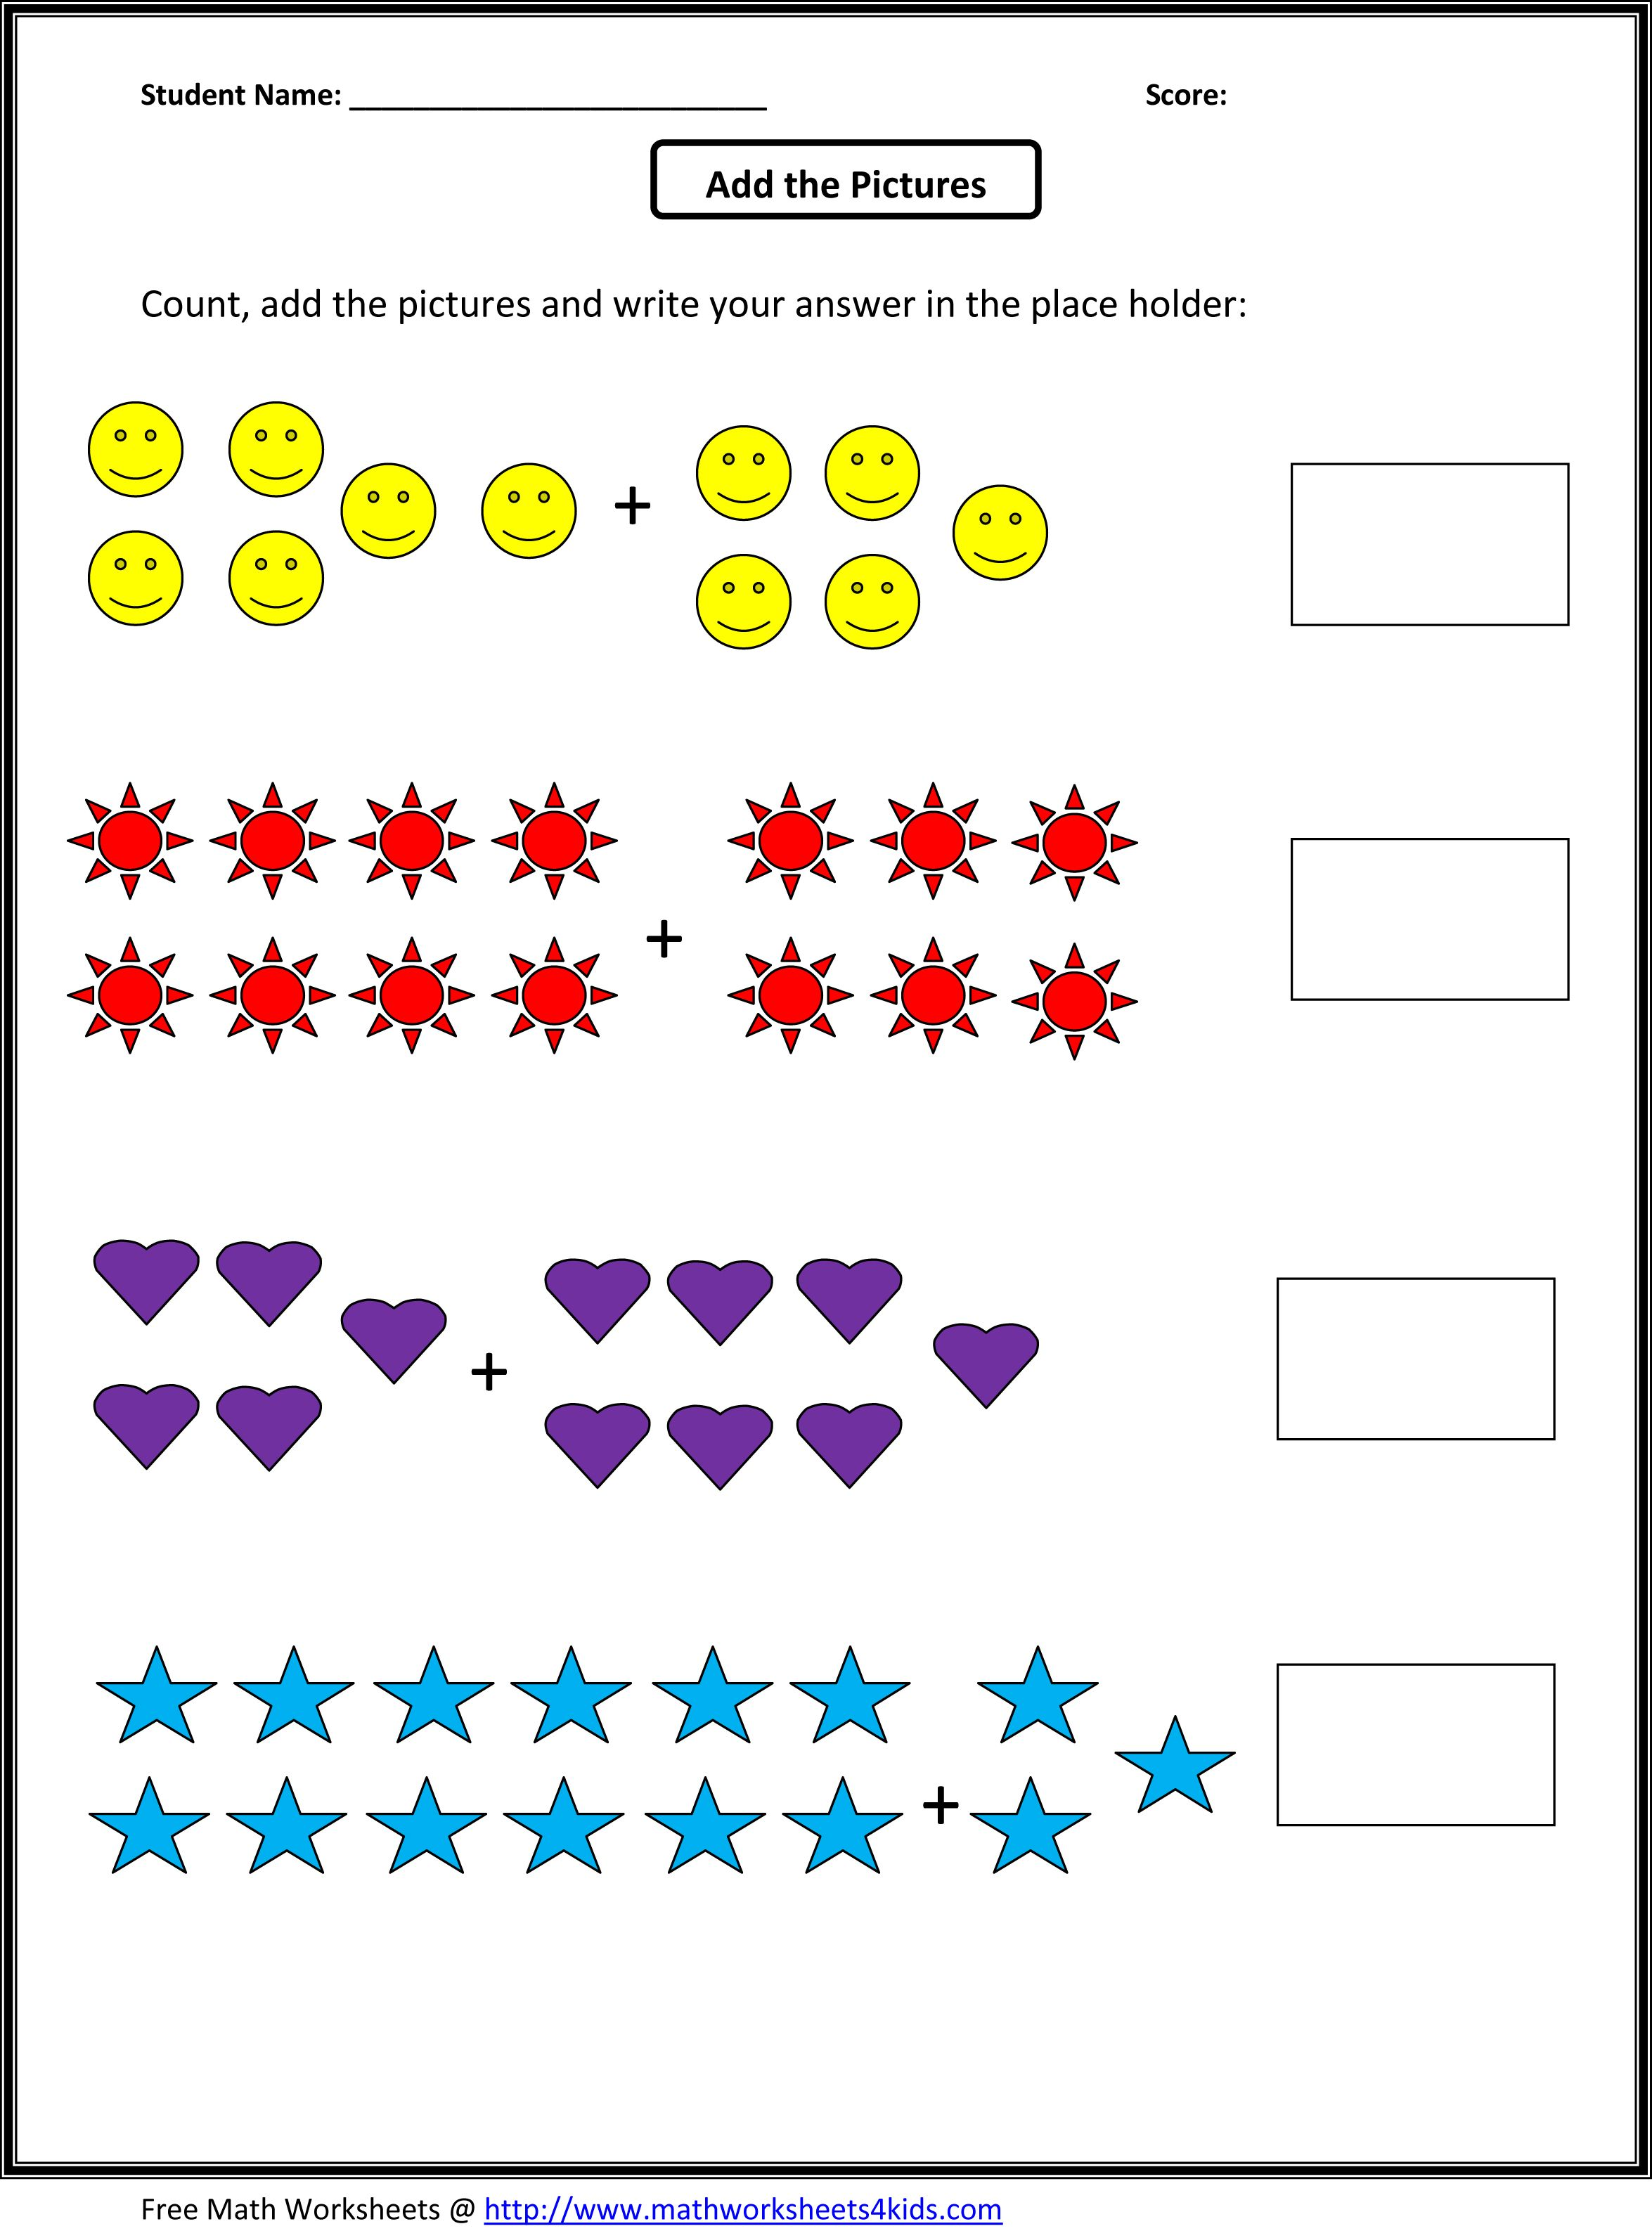 Aldiablosus  Ravishing Worksheet For Math Grade   Coffemix With Likable  Images About School On Pinterest  Mental Maths Worksheets  With Delightful Phonics Printable Worksheets Also Fire Prevention Worksheets In Addition Short A Worksheets For Kindergarten And Reflection Rotation Translation Worksheet As Well As Math For Second Graders Worksheets Additionally Chemistry Mole Worksheet From Coffemixcom With Aldiablosus  Likable Worksheet For Math Grade   Coffemix With Delightful  Images About School On Pinterest  Mental Maths Worksheets  And Ravishing Phonics Printable Worksheets Also Fire Prevention Worksheets In Addition Short A Worksheets For Kindergarten From Coffemixcom